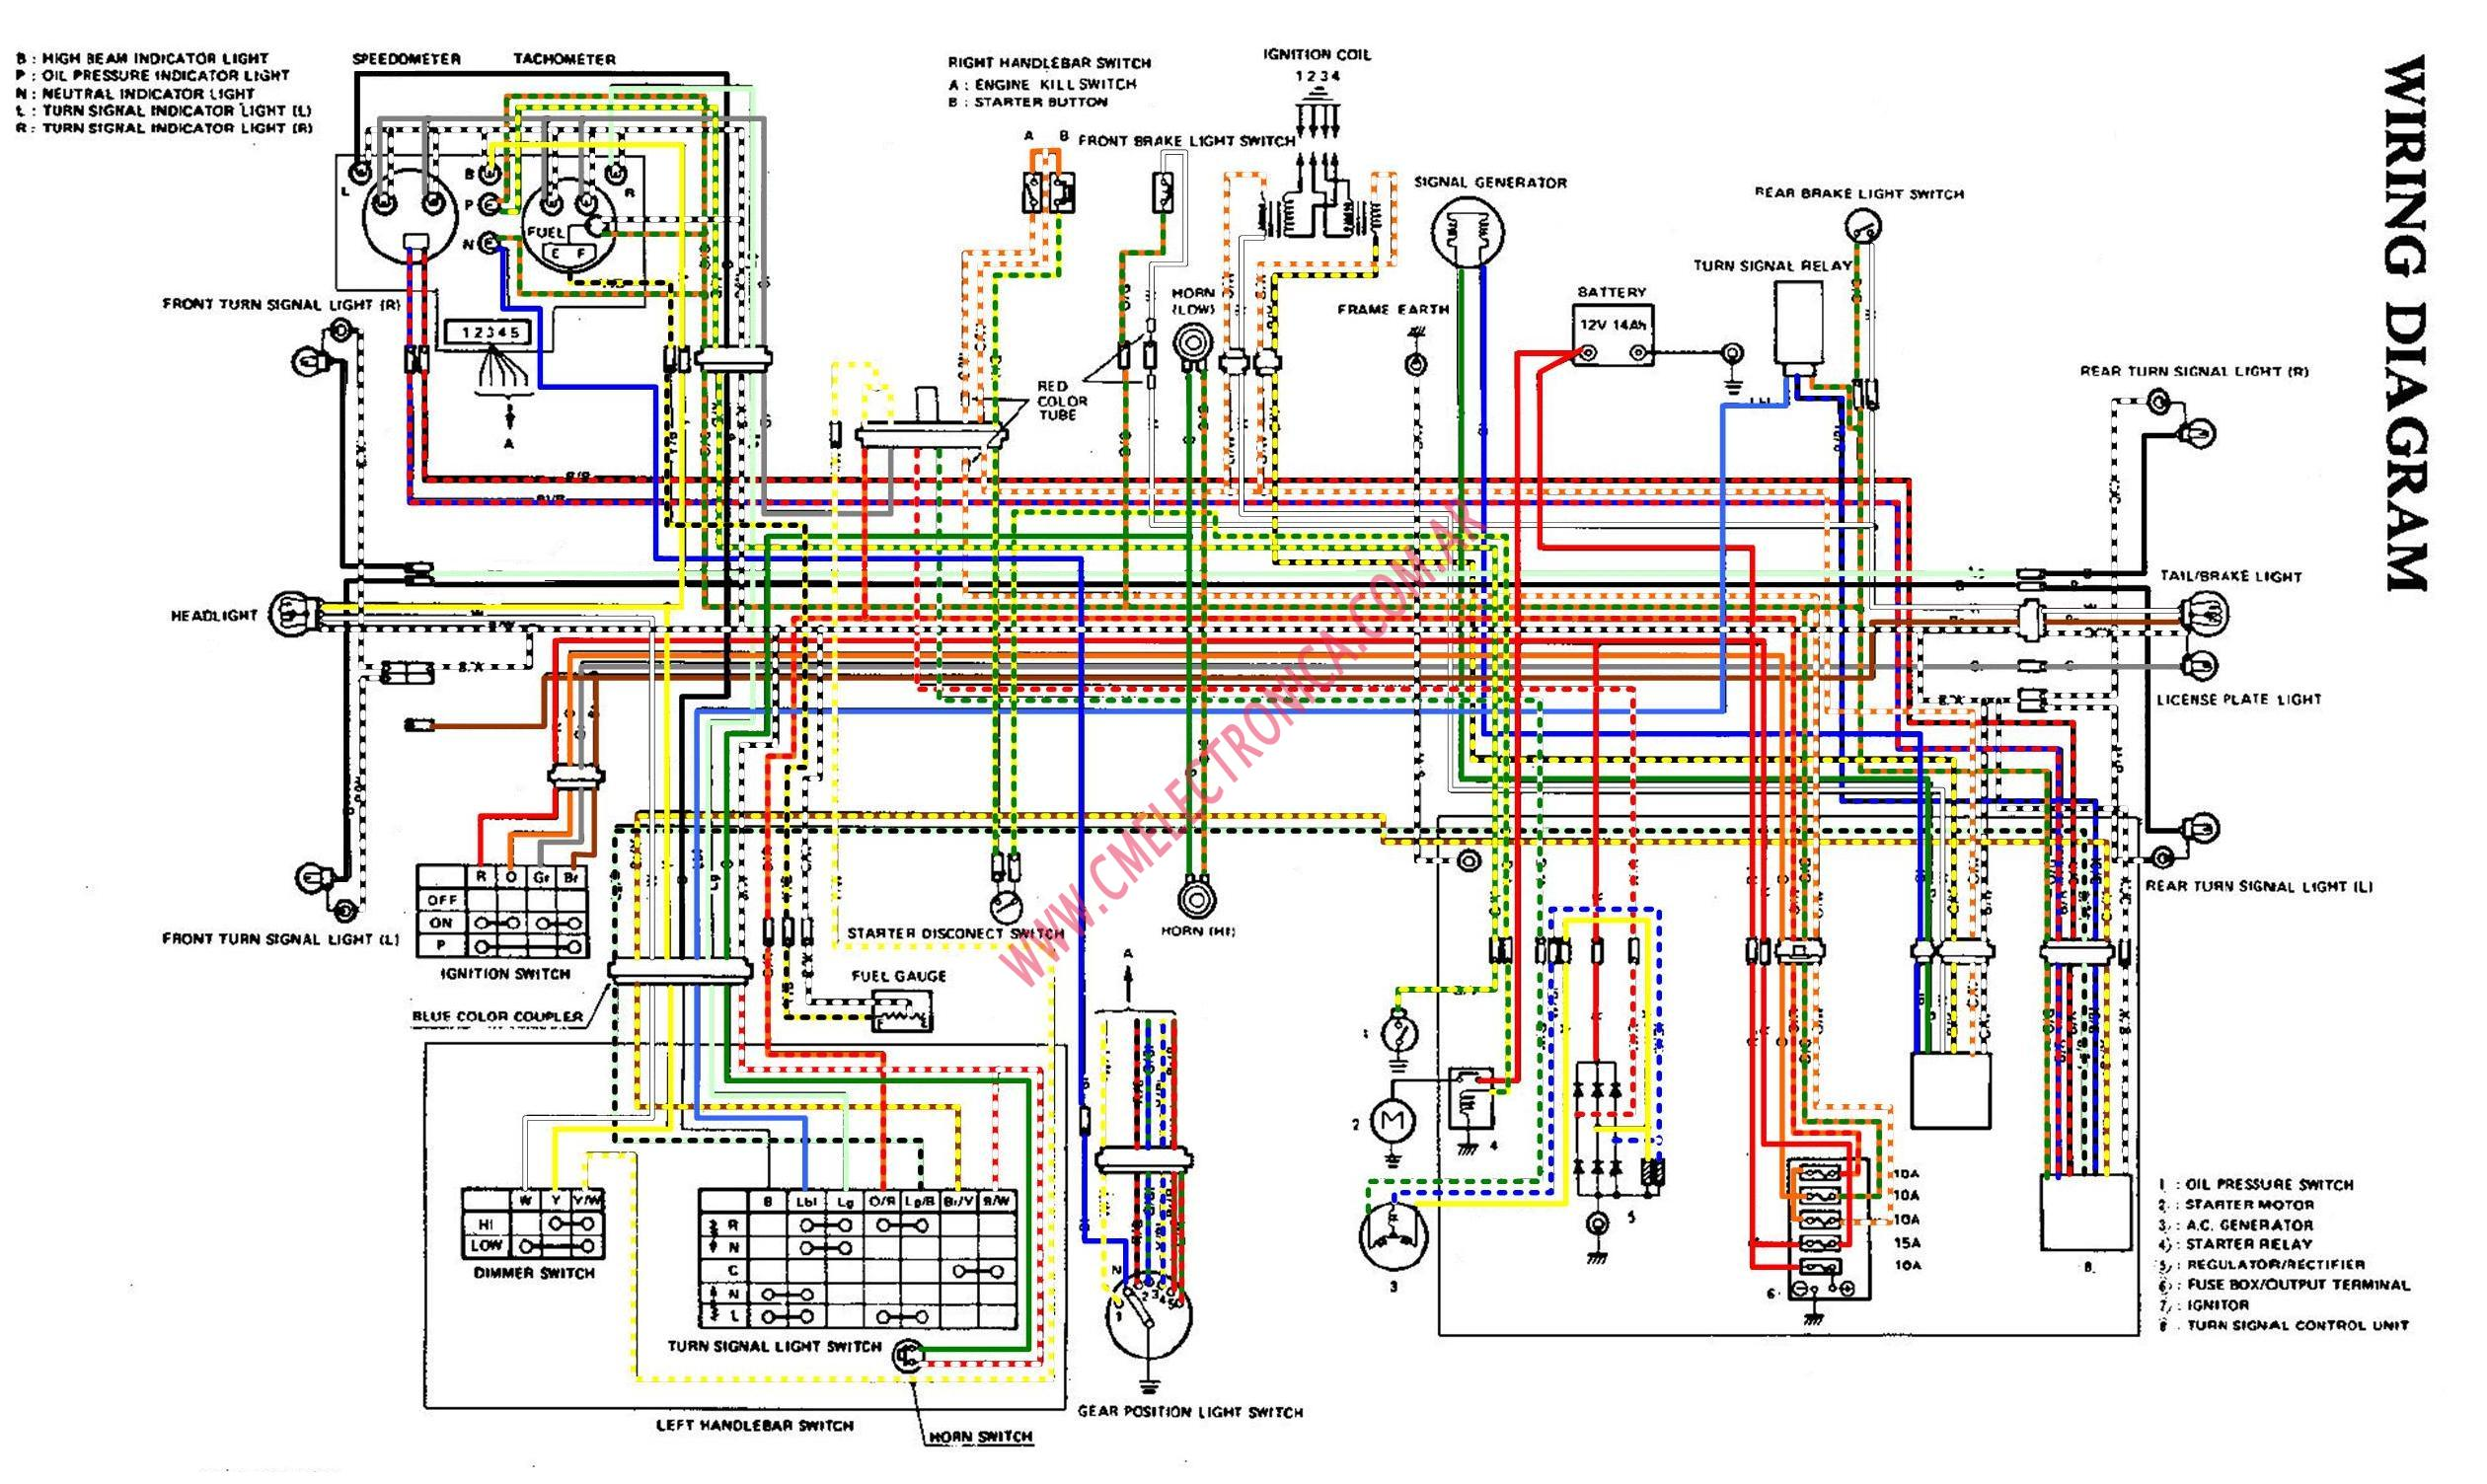 Gs750 Wiring Diagram Wiring Diagram Schematics Zx6e Wiring Diagram 79 Gs750 Wiring  Diagram